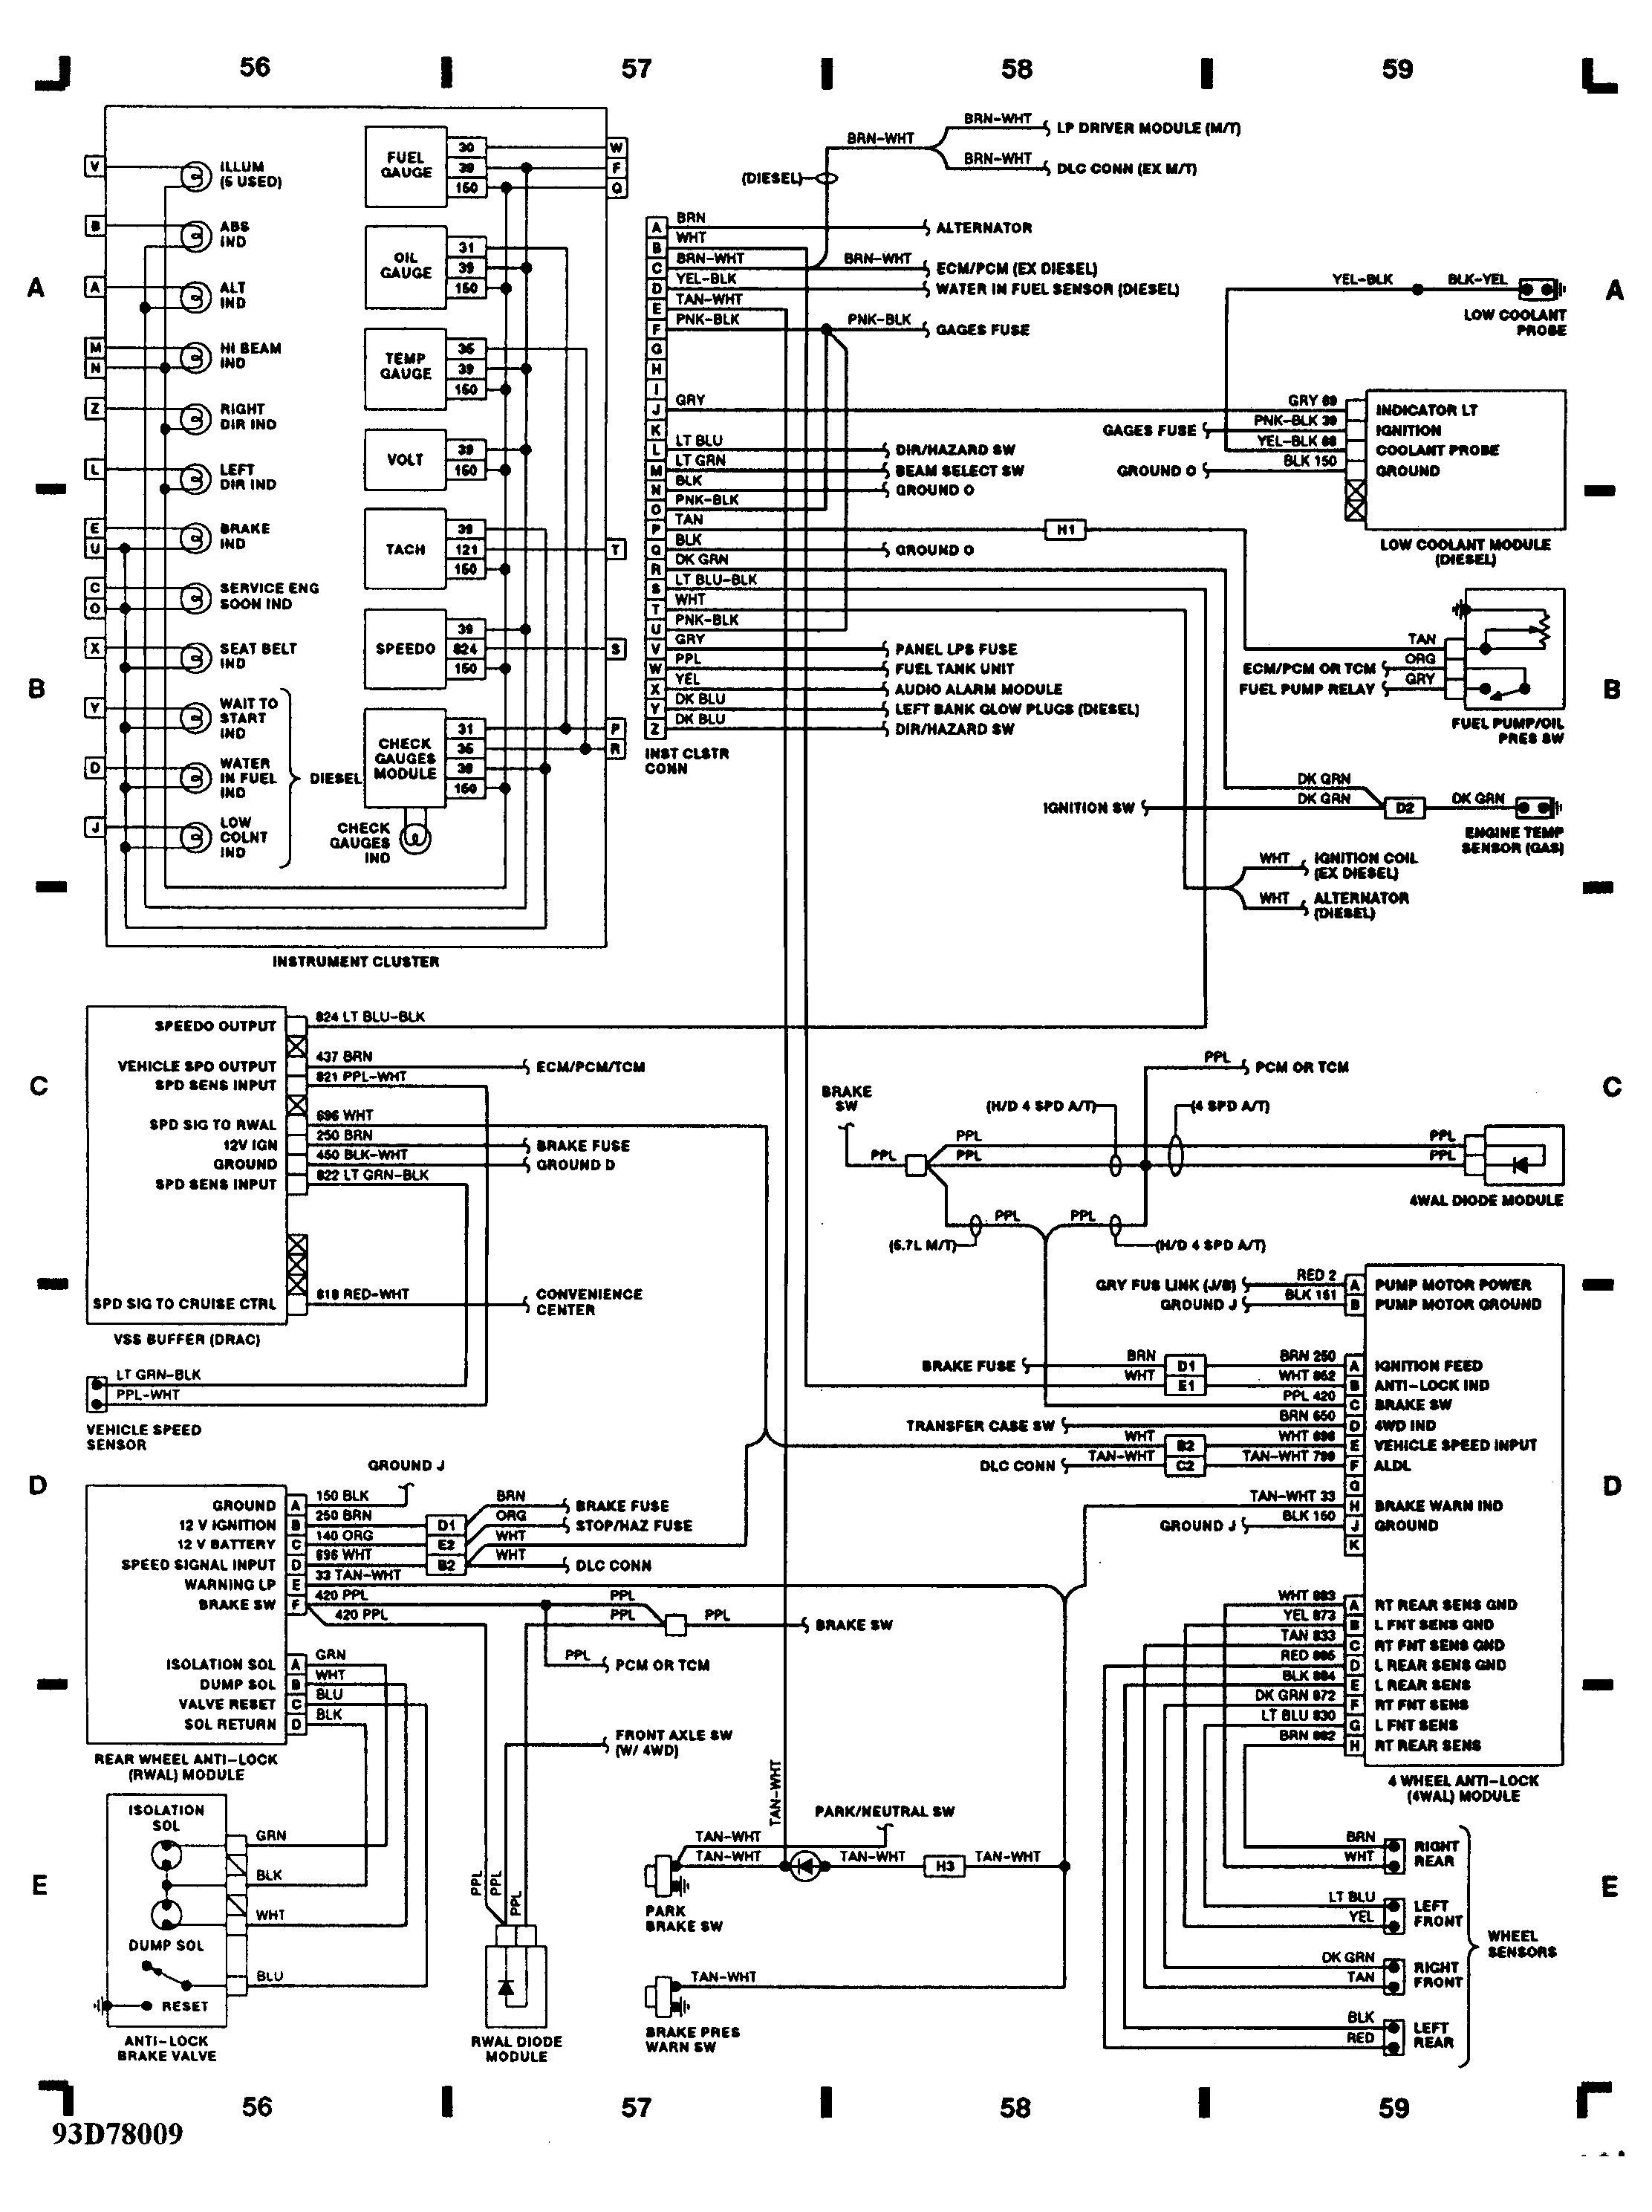 5 3l engine diagram wiring diagram options Chevy 4.3 Engine Diagram